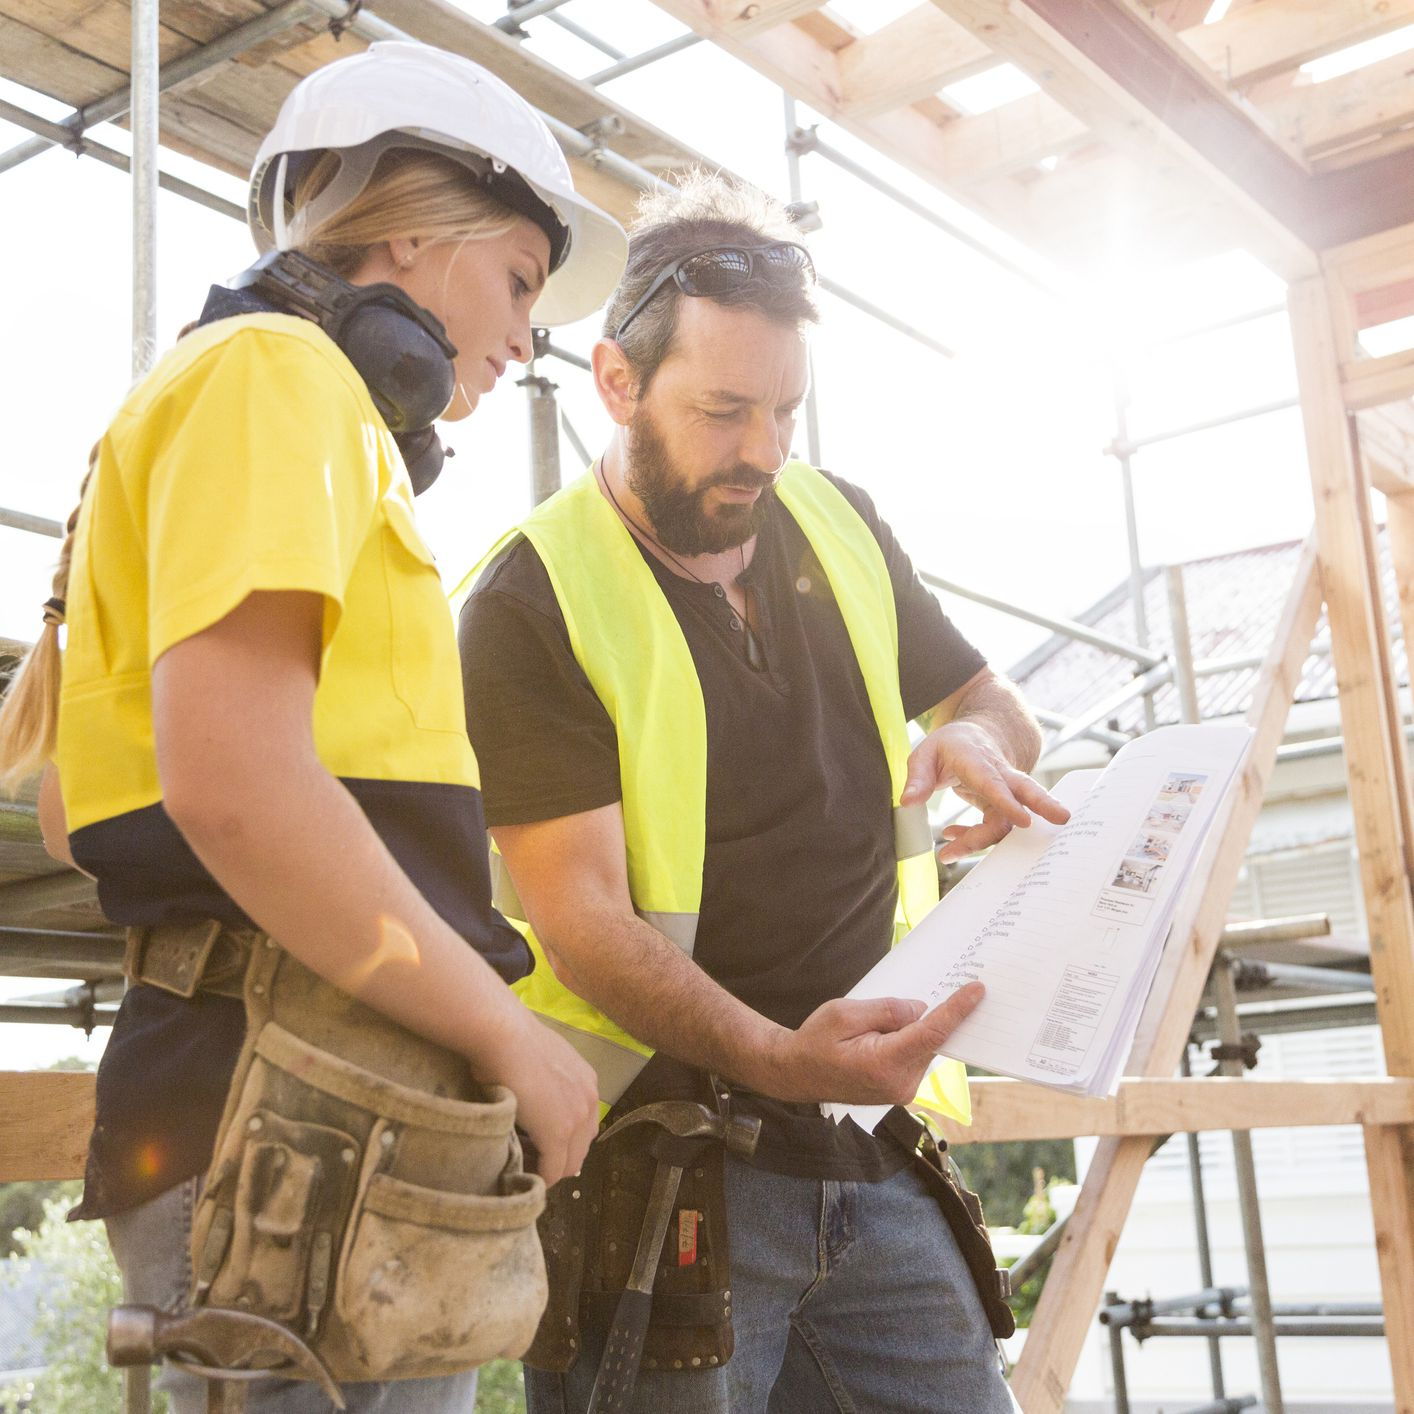 How to Exercise When You Work in Manual Labor